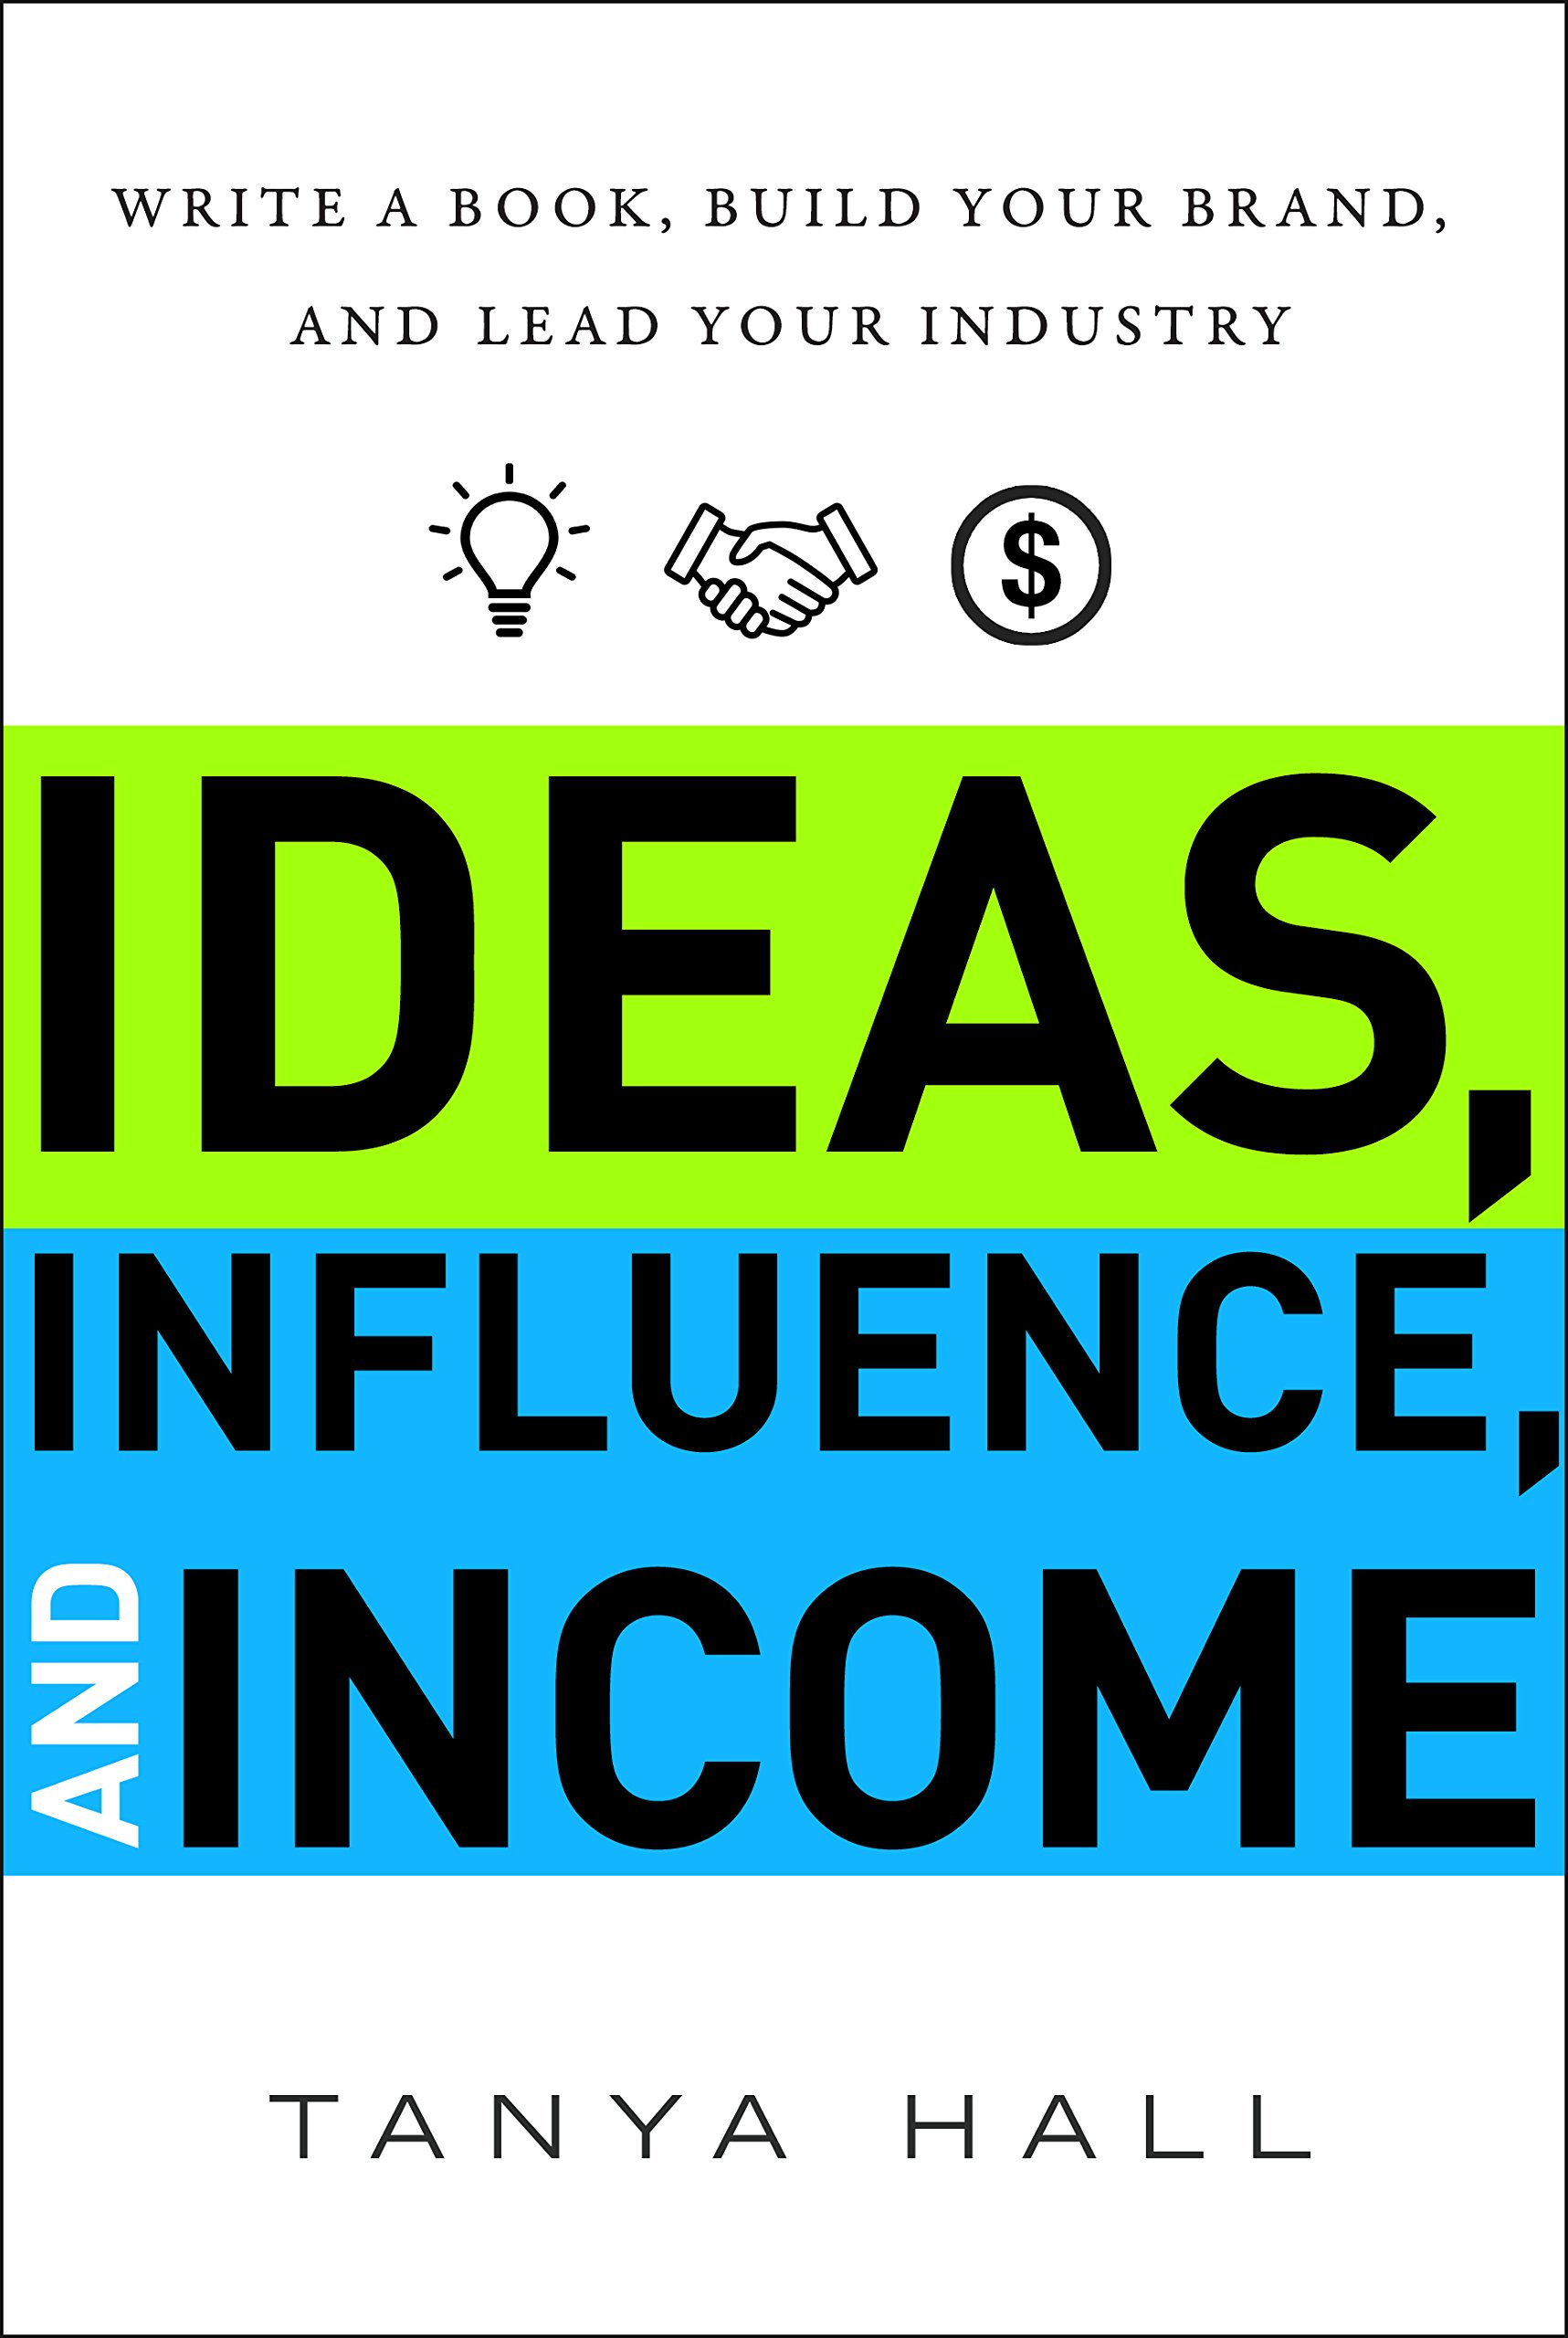 Ideas, Influence, and Income: Write a Book, Build Your Brand, and